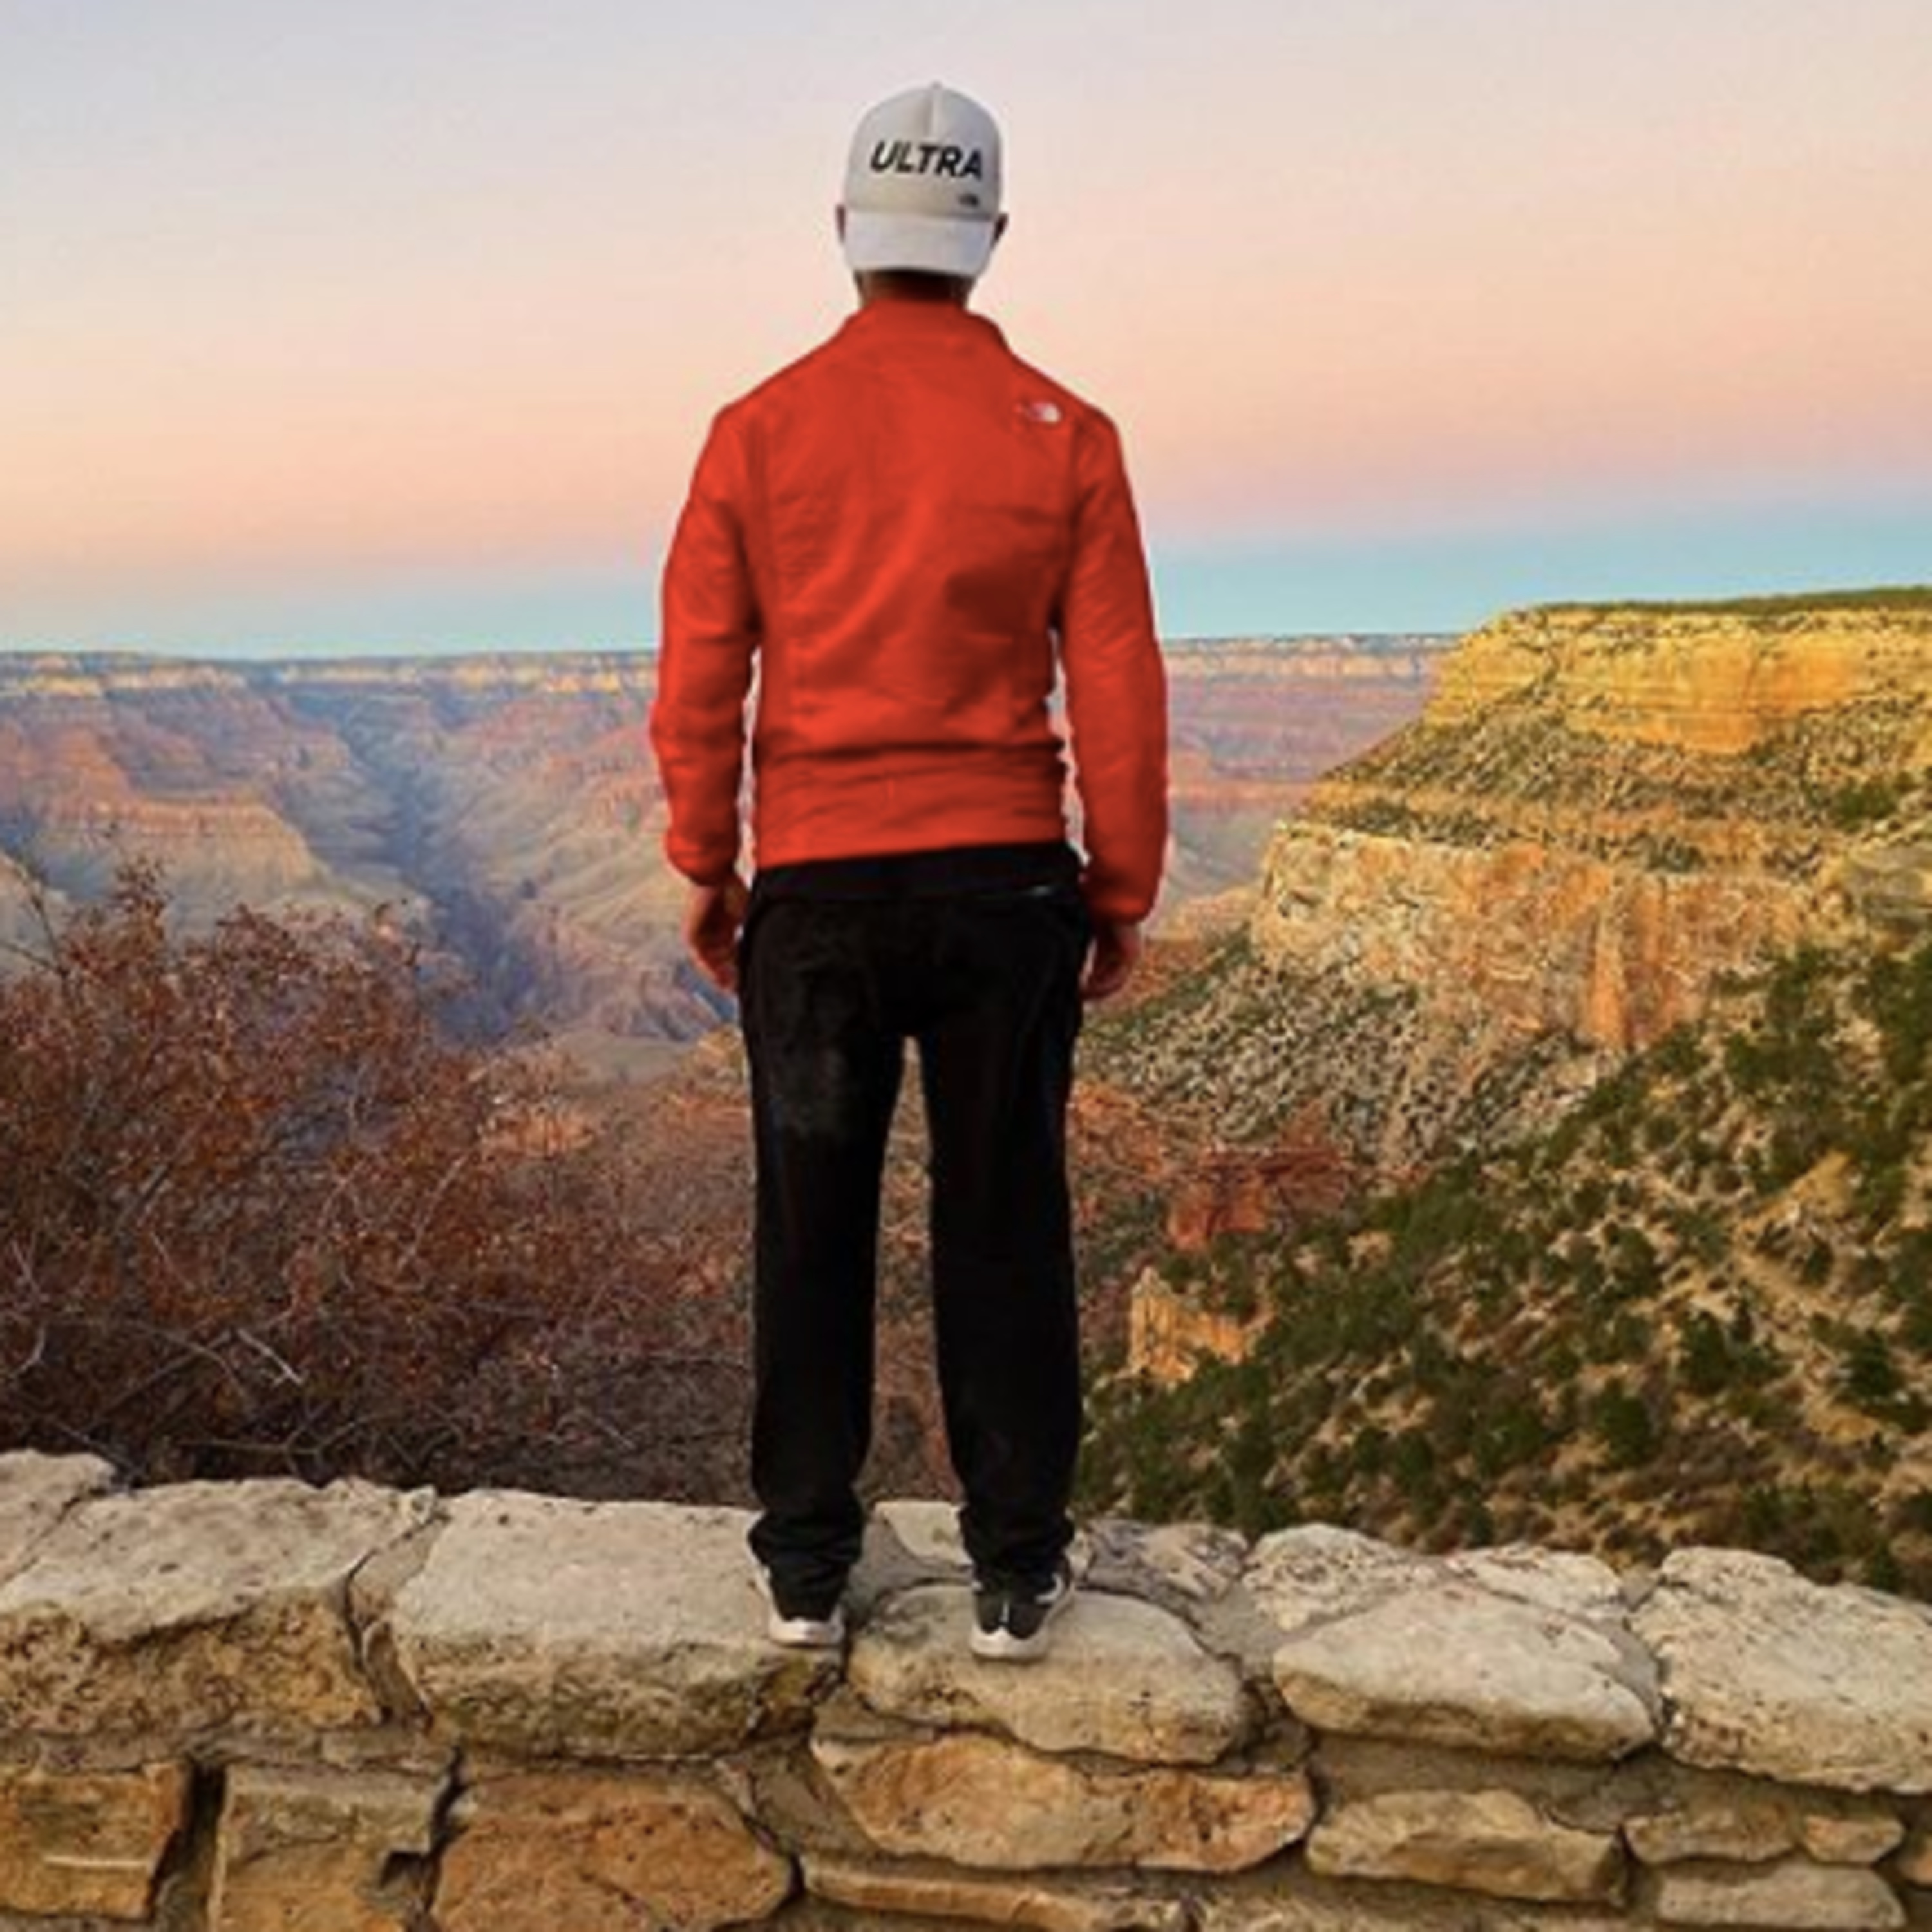 38. A Grand Canyon Wrap-Up with David Roche 🏜